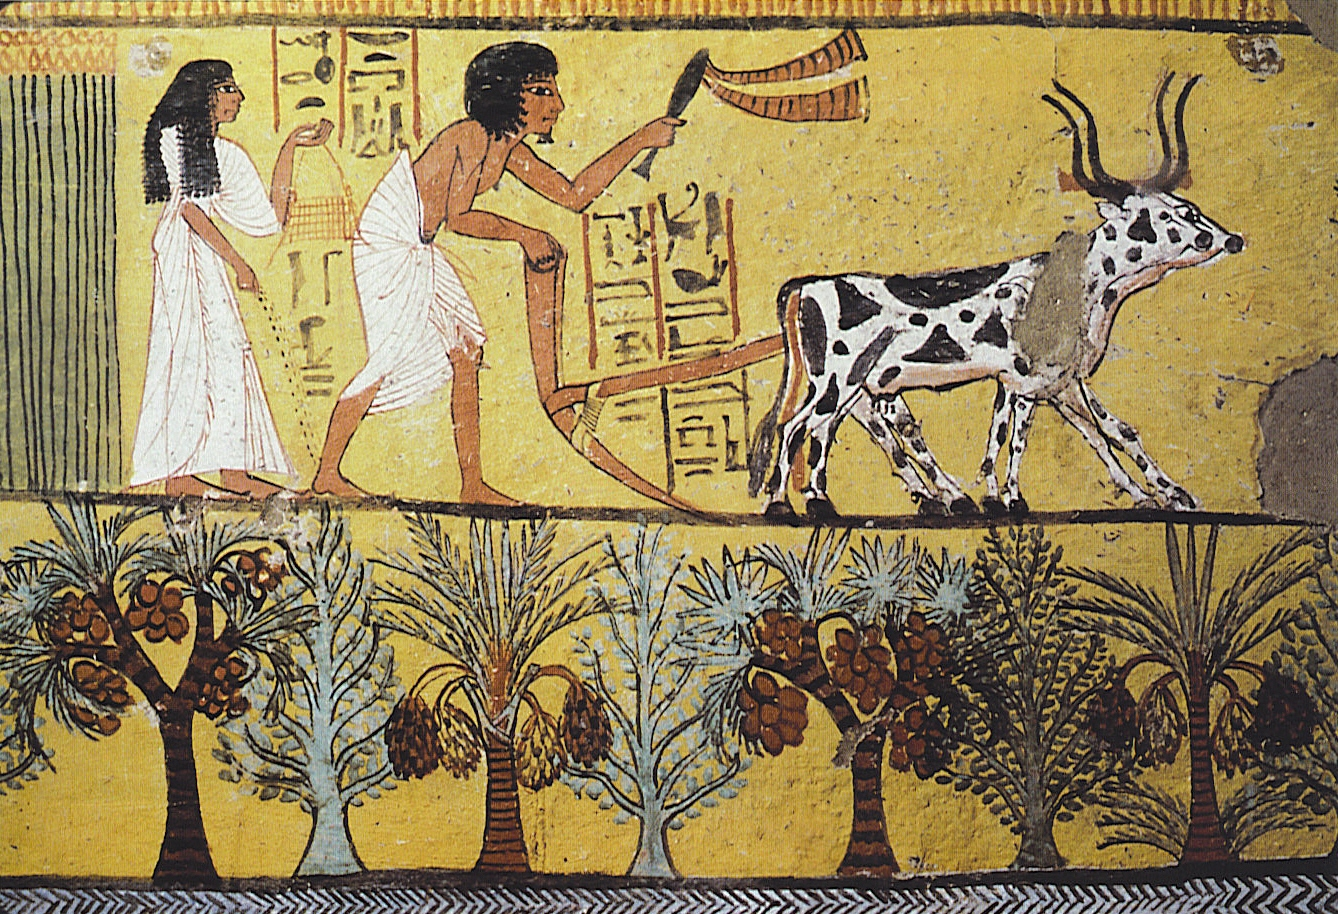 the life of peasants in ancient egypt Peasant life in ancient egypt keyword after analyzing the system lists the list of keywords related and the list of websites with related content, in addition you can see which keywords most interested customers on the this website.